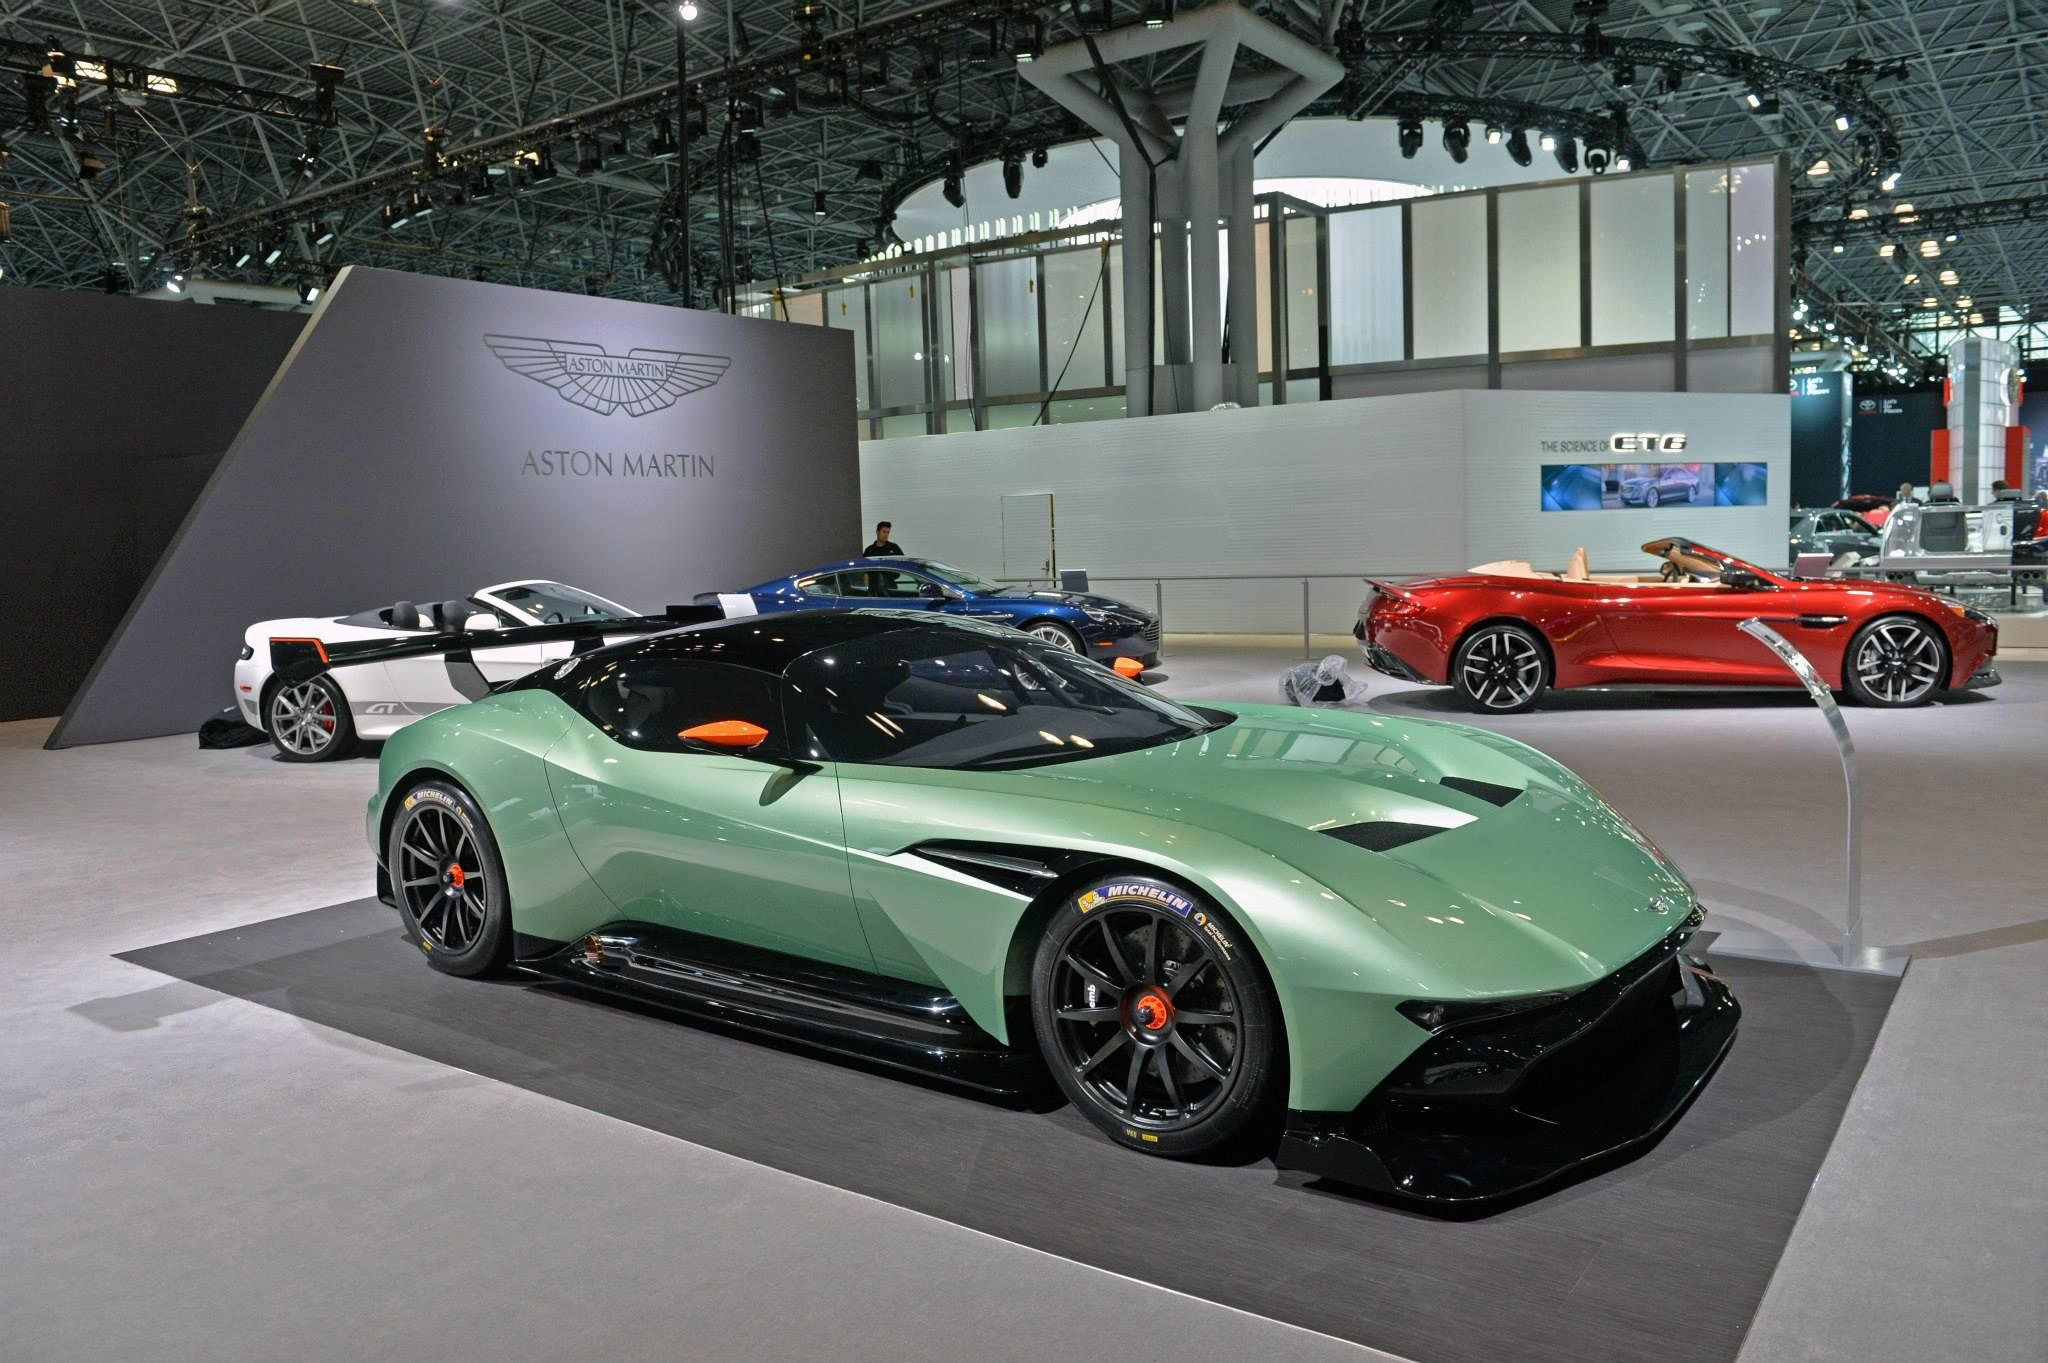 aston martin is currently showcasing a phenomenal range of cars at